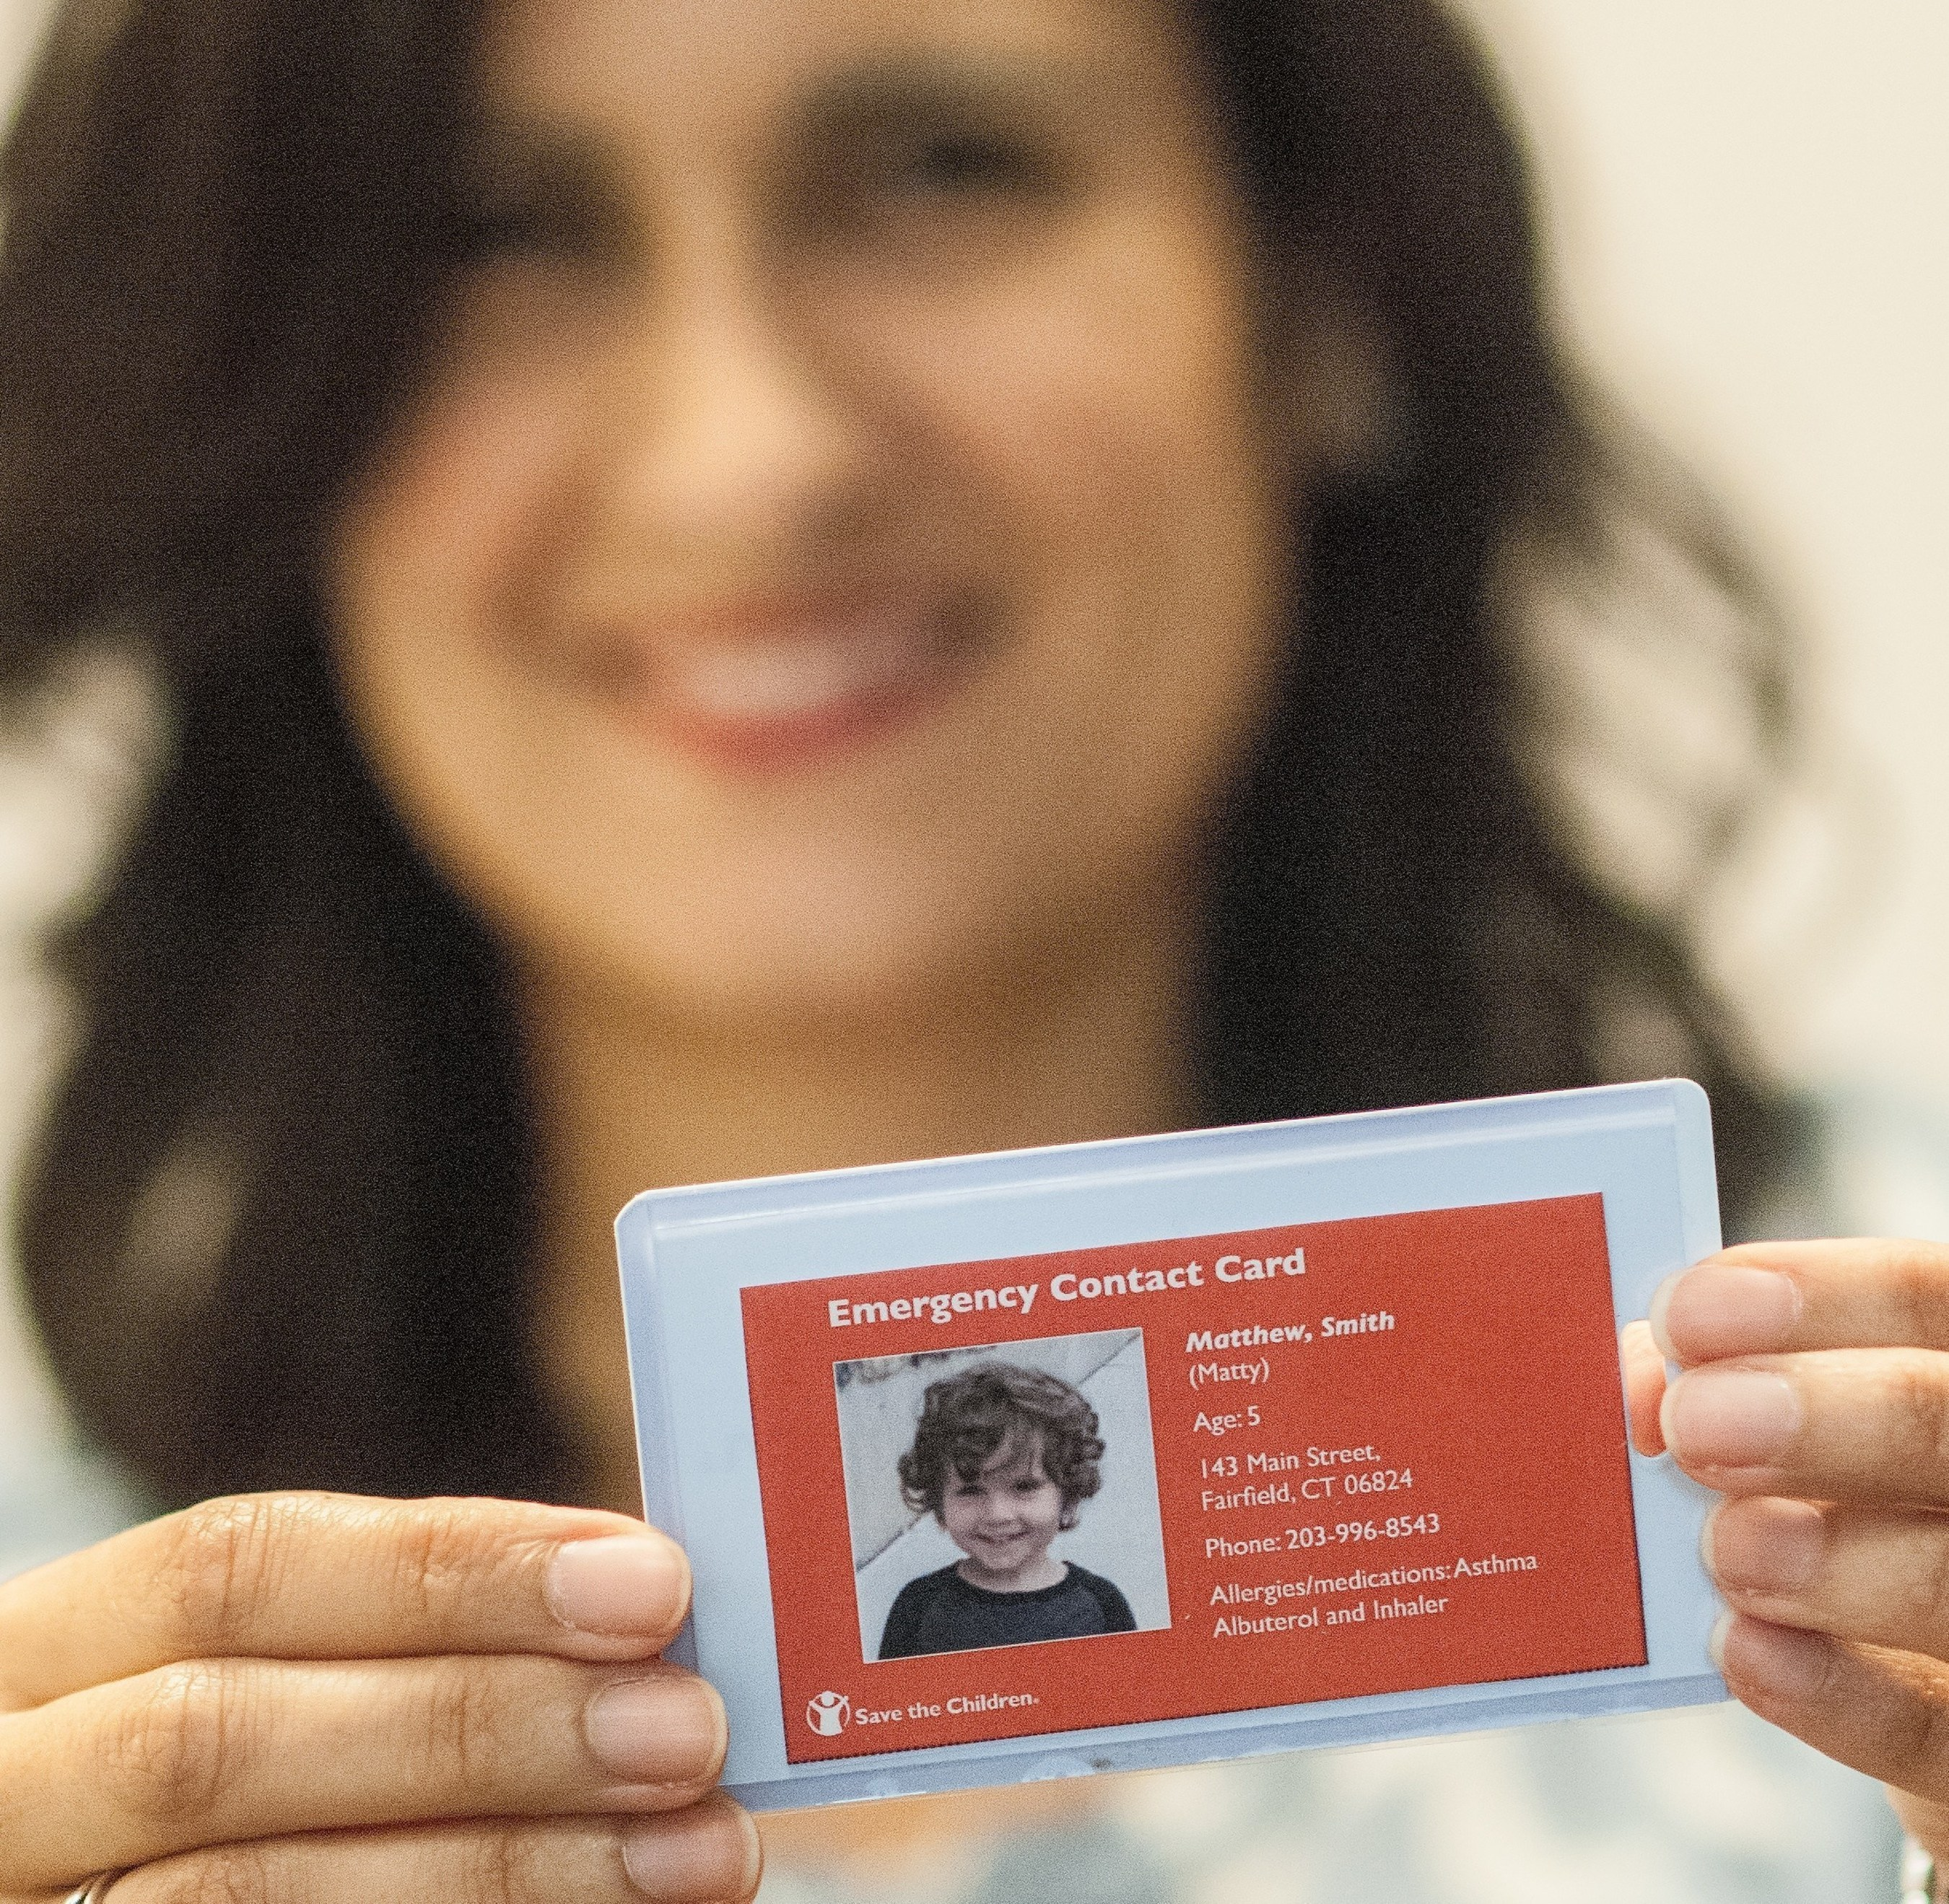 """Save the Children's """"Stay Connected"""" campaign calls on parents to create emergency contact cards. These can serve as a lifeline to children when disasters separate families. After Hurricane Katrina, there were 5,000 reports of missing children. Credit: Susan Warner/Save the Children"""